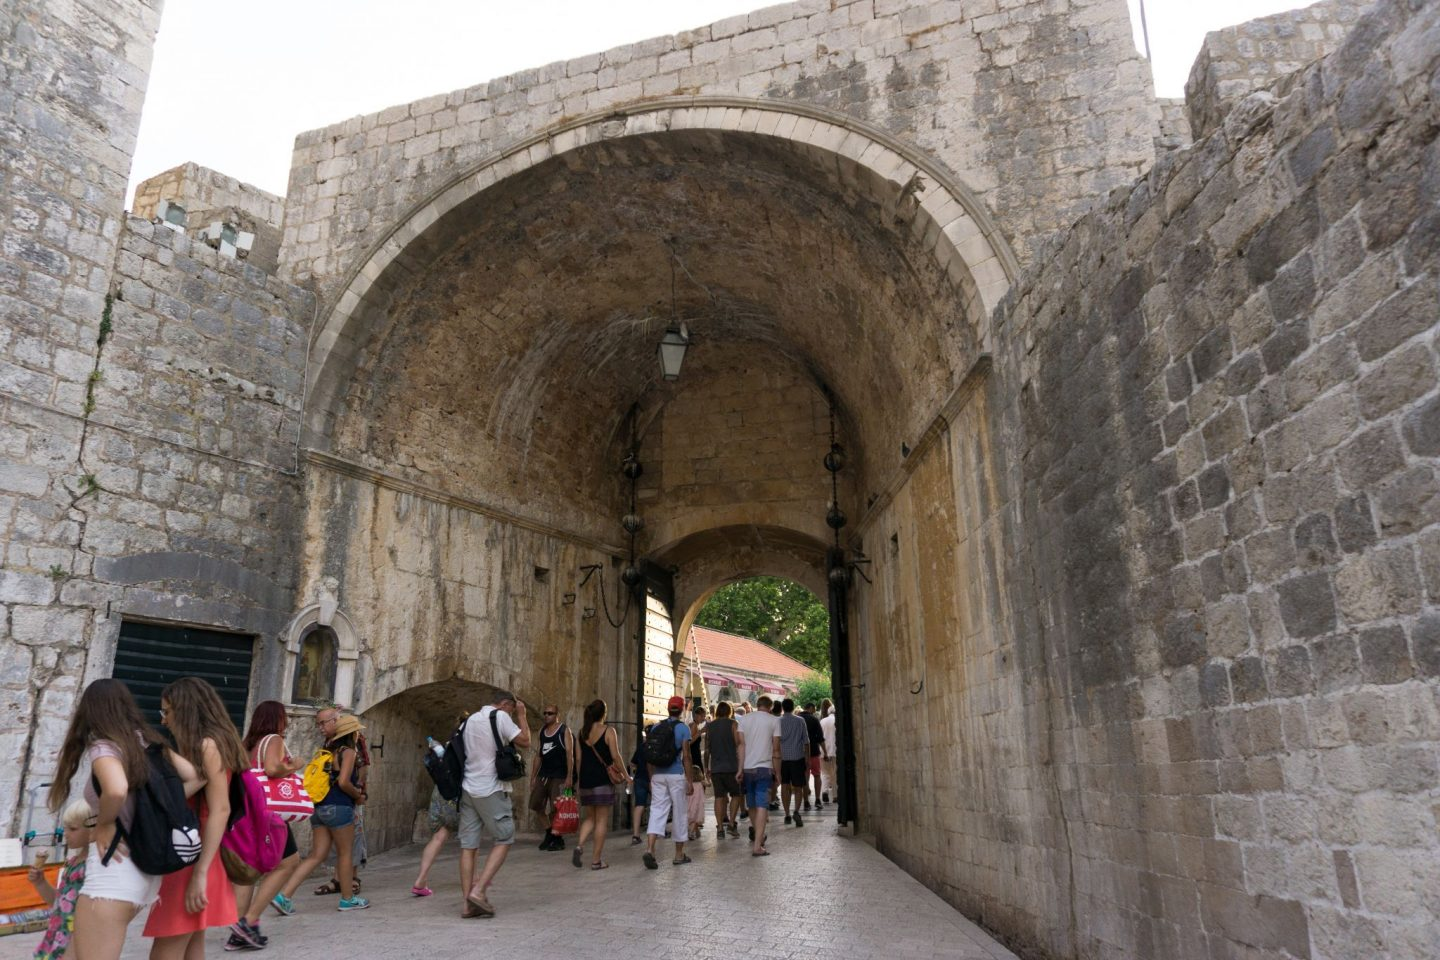 Travel Croatia Game of Thrones walking tour Dubrovnik City Guide Nadia El Ferdaoussi the daily s'elf